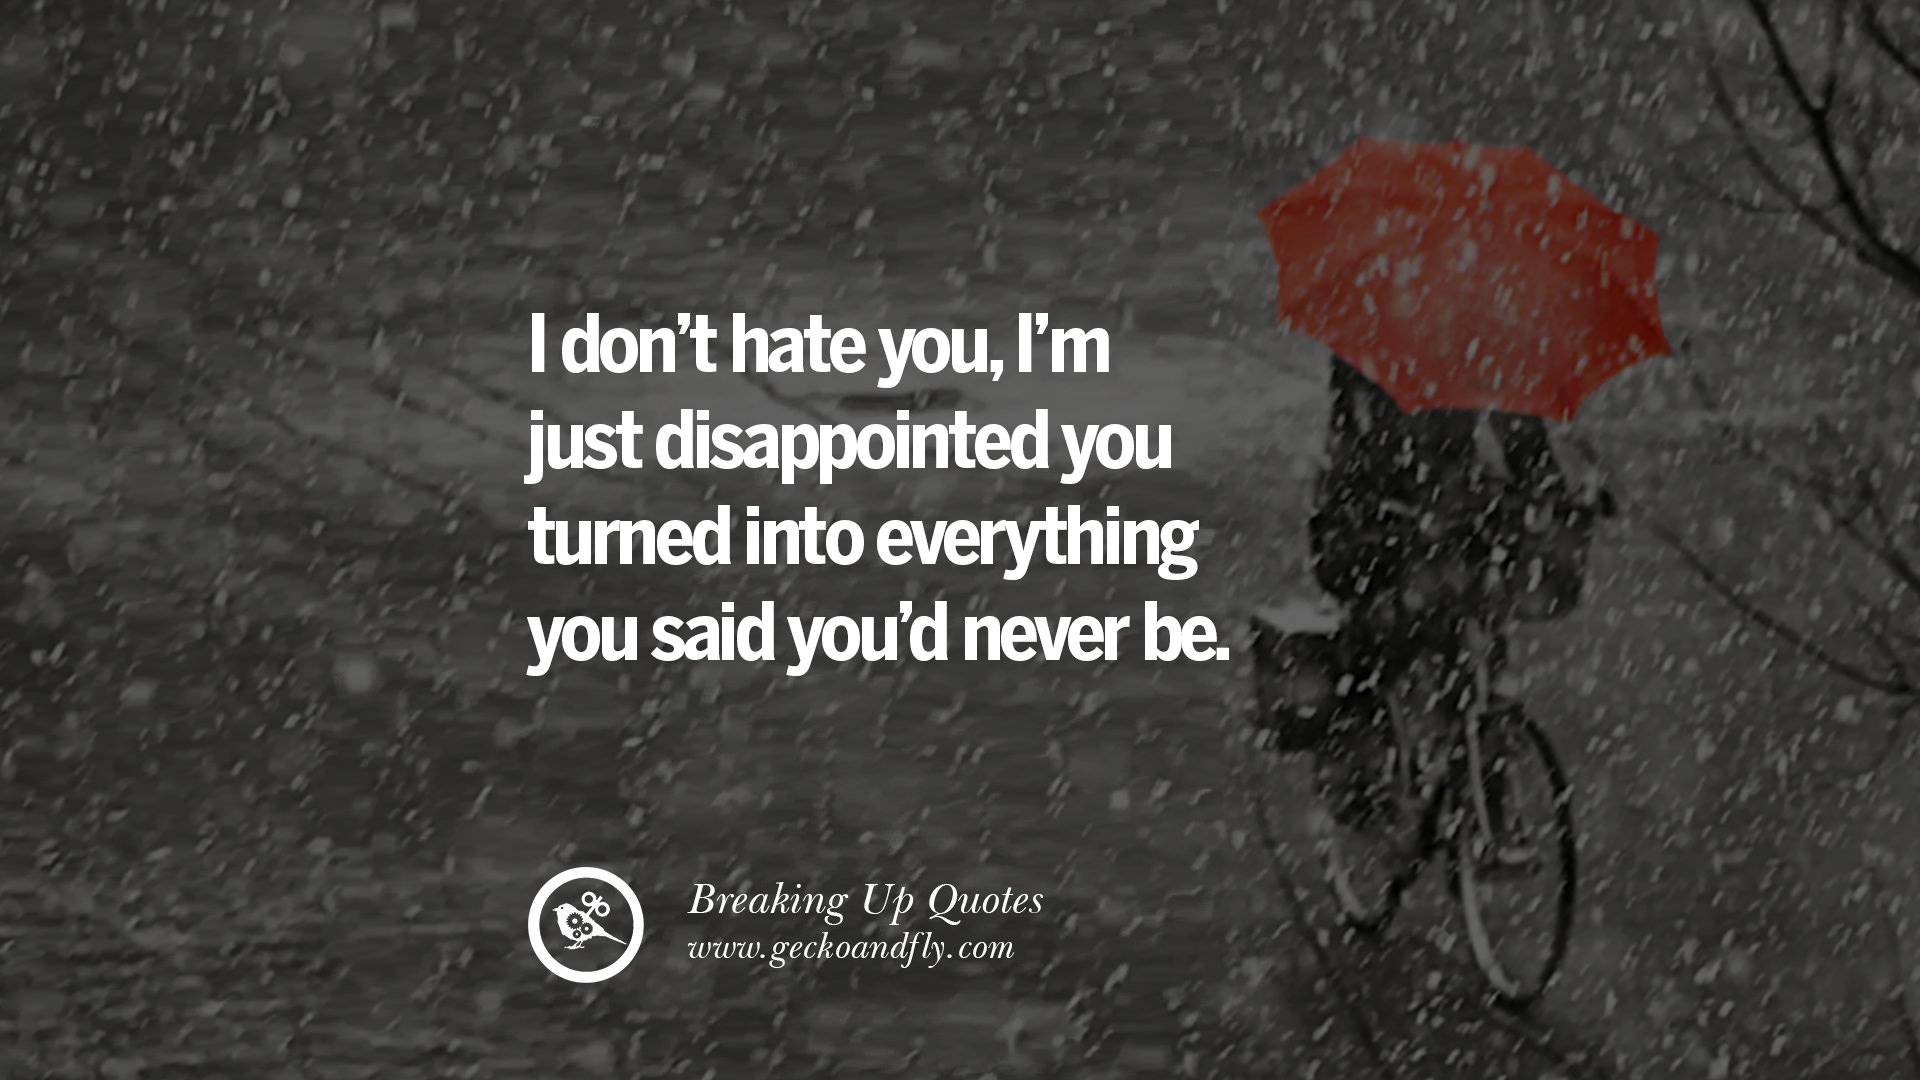 I Hate You Quotes I Like That: 40 Quotes On Getting Over A Break Up After A Bad Relationship